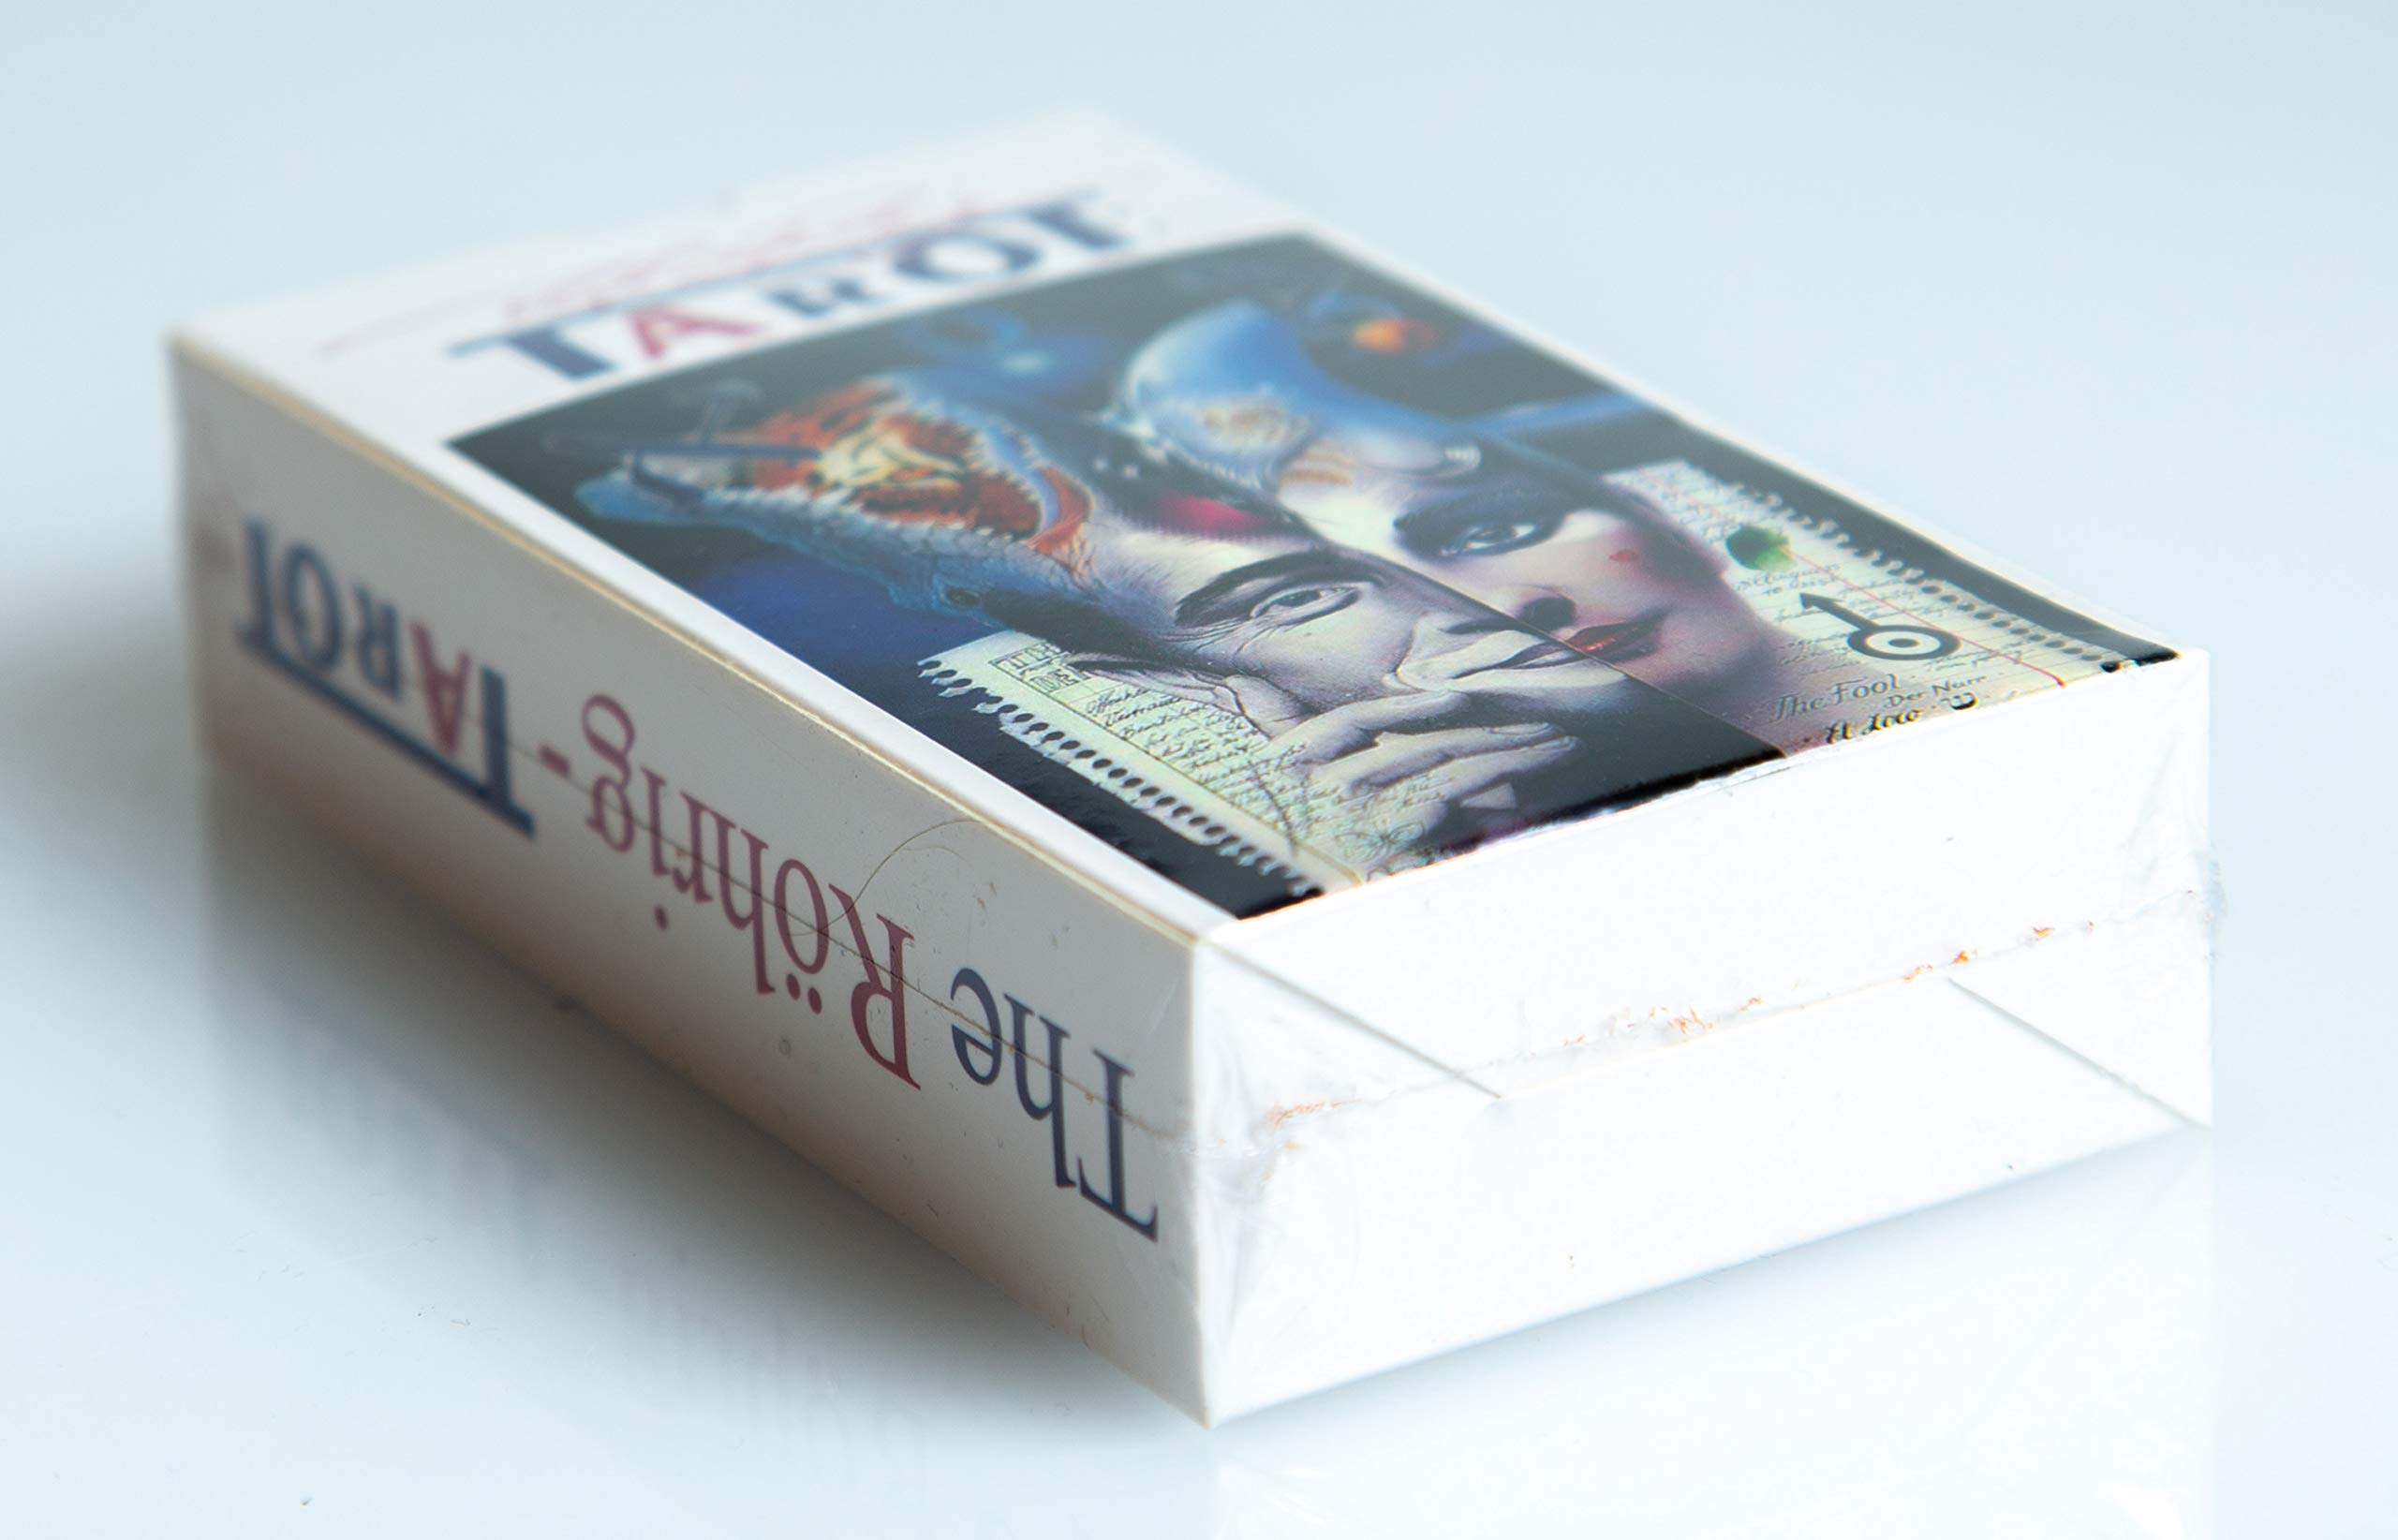 New 78 The Rohrig Tarot Tarot Cards Deck (Replica) Valentines Gift by Unknown (Image #2)